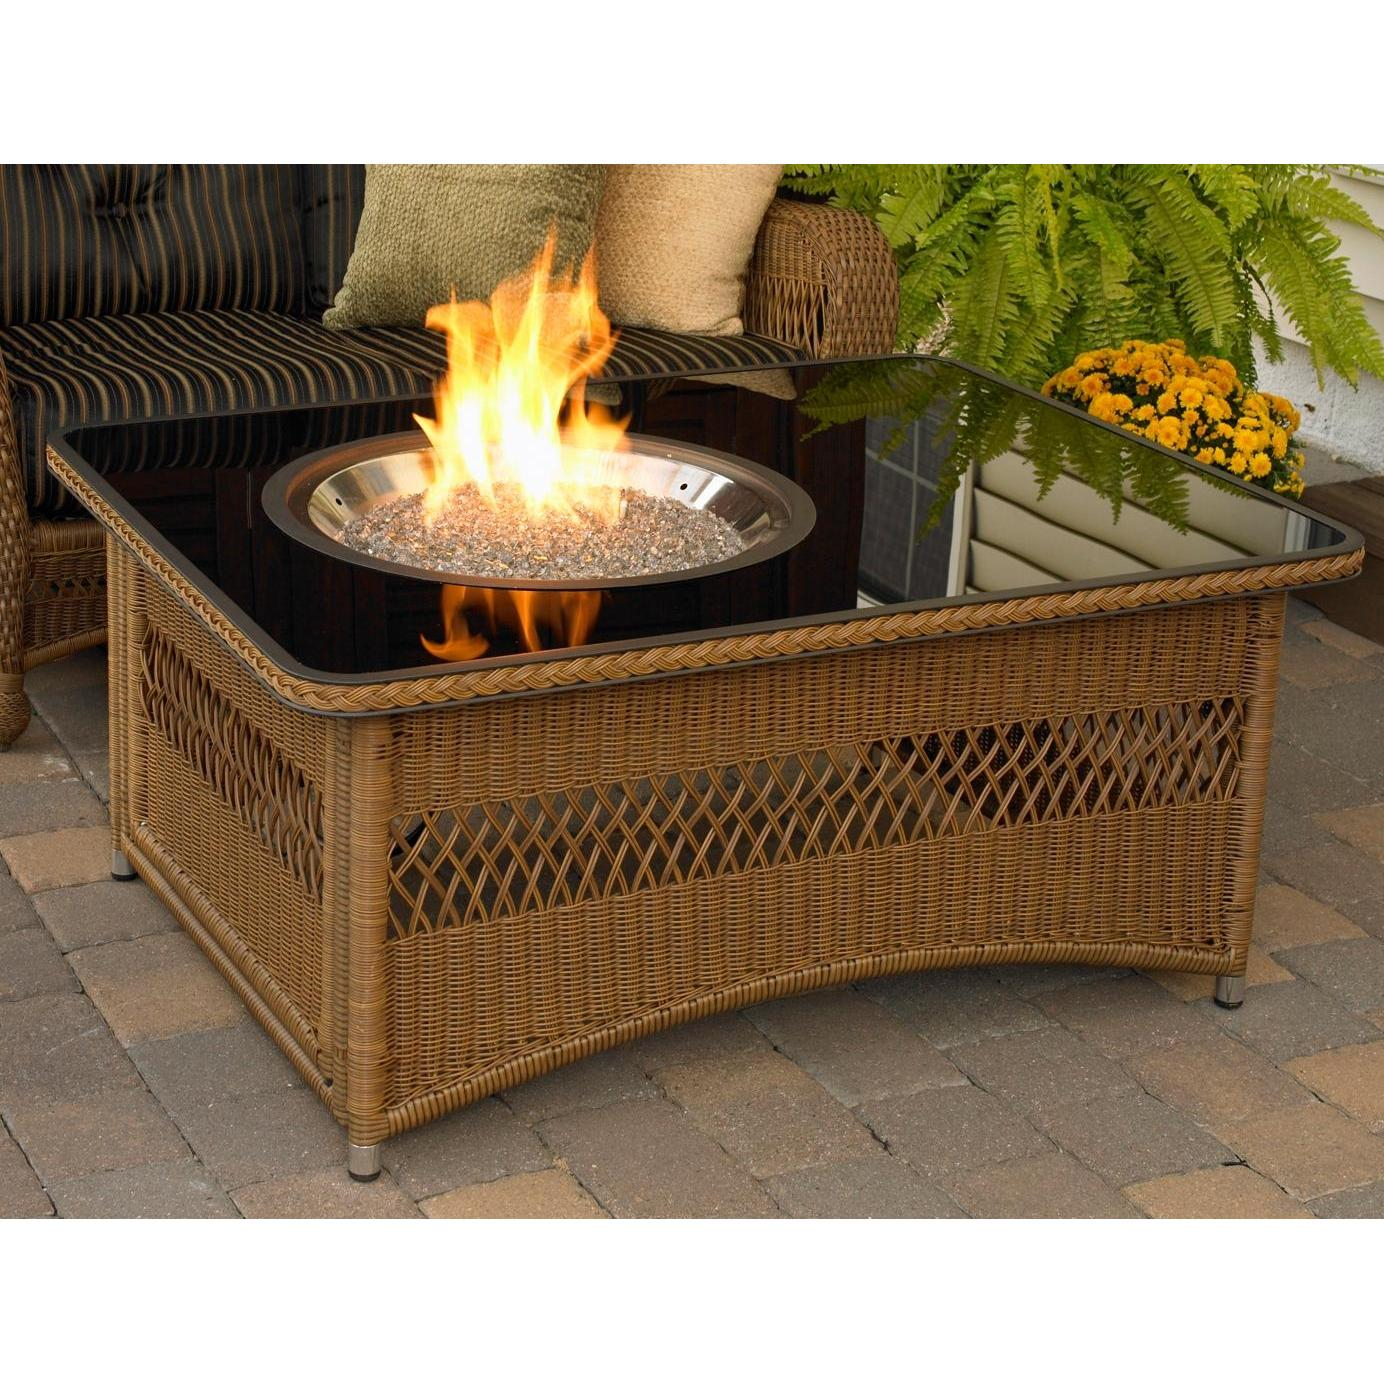 Outdoor GreatRoom Company Naples 48 Inch Fire Pit Coffee Table With Black Glass Top - Propane